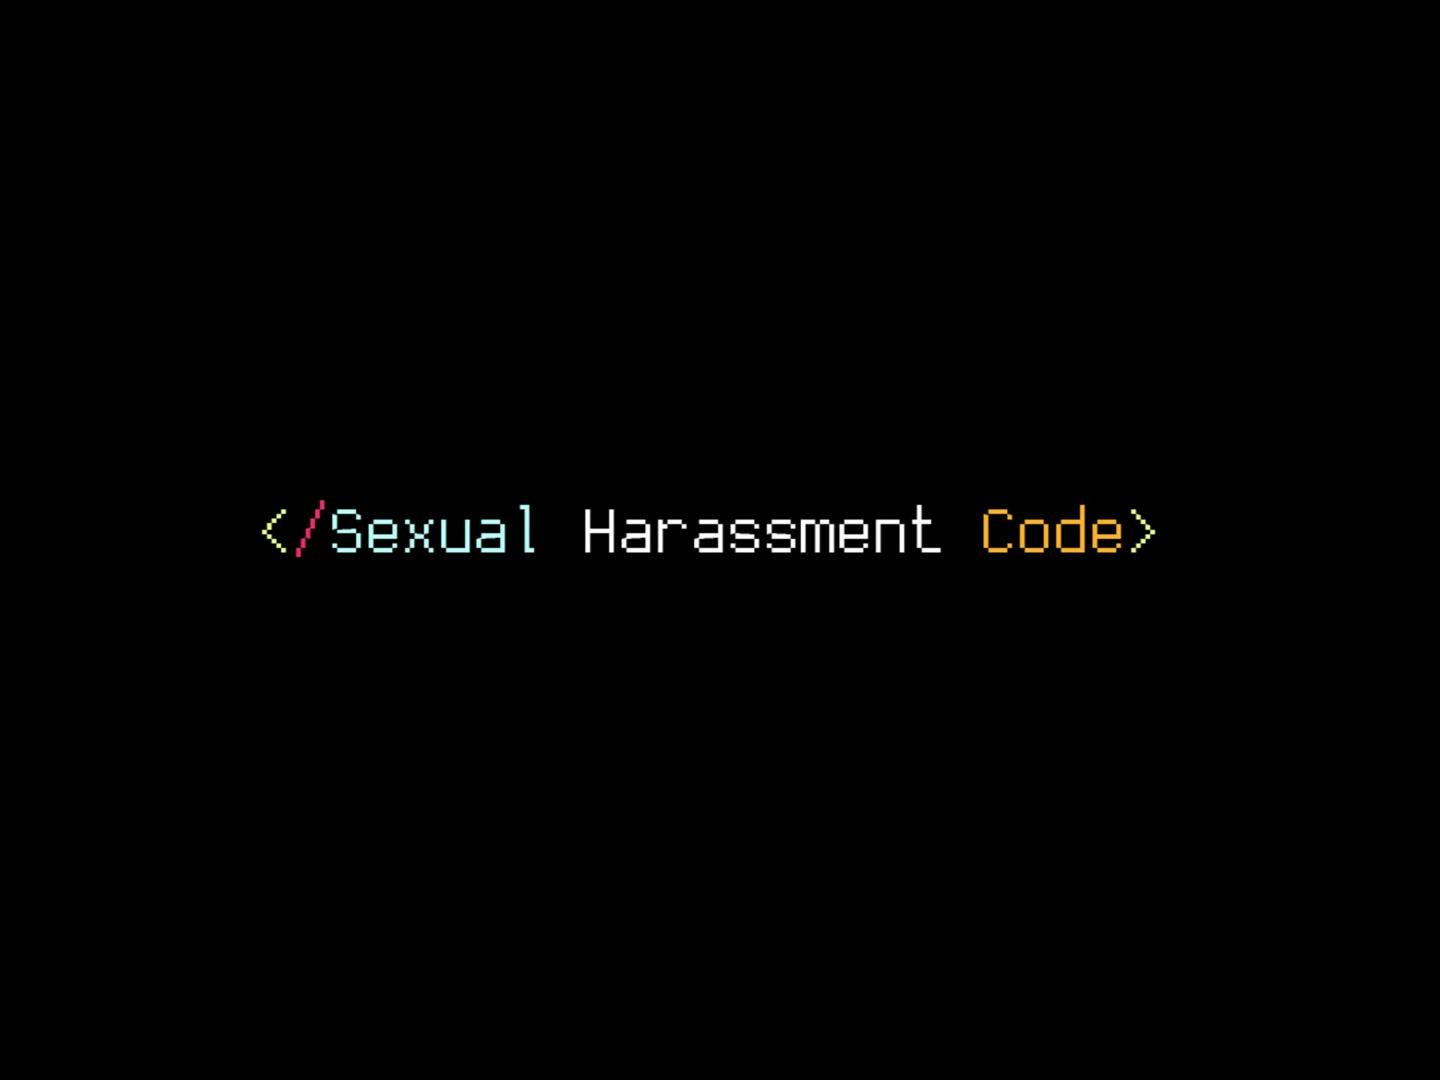 </Sexual Harassment Code> Thumbnail